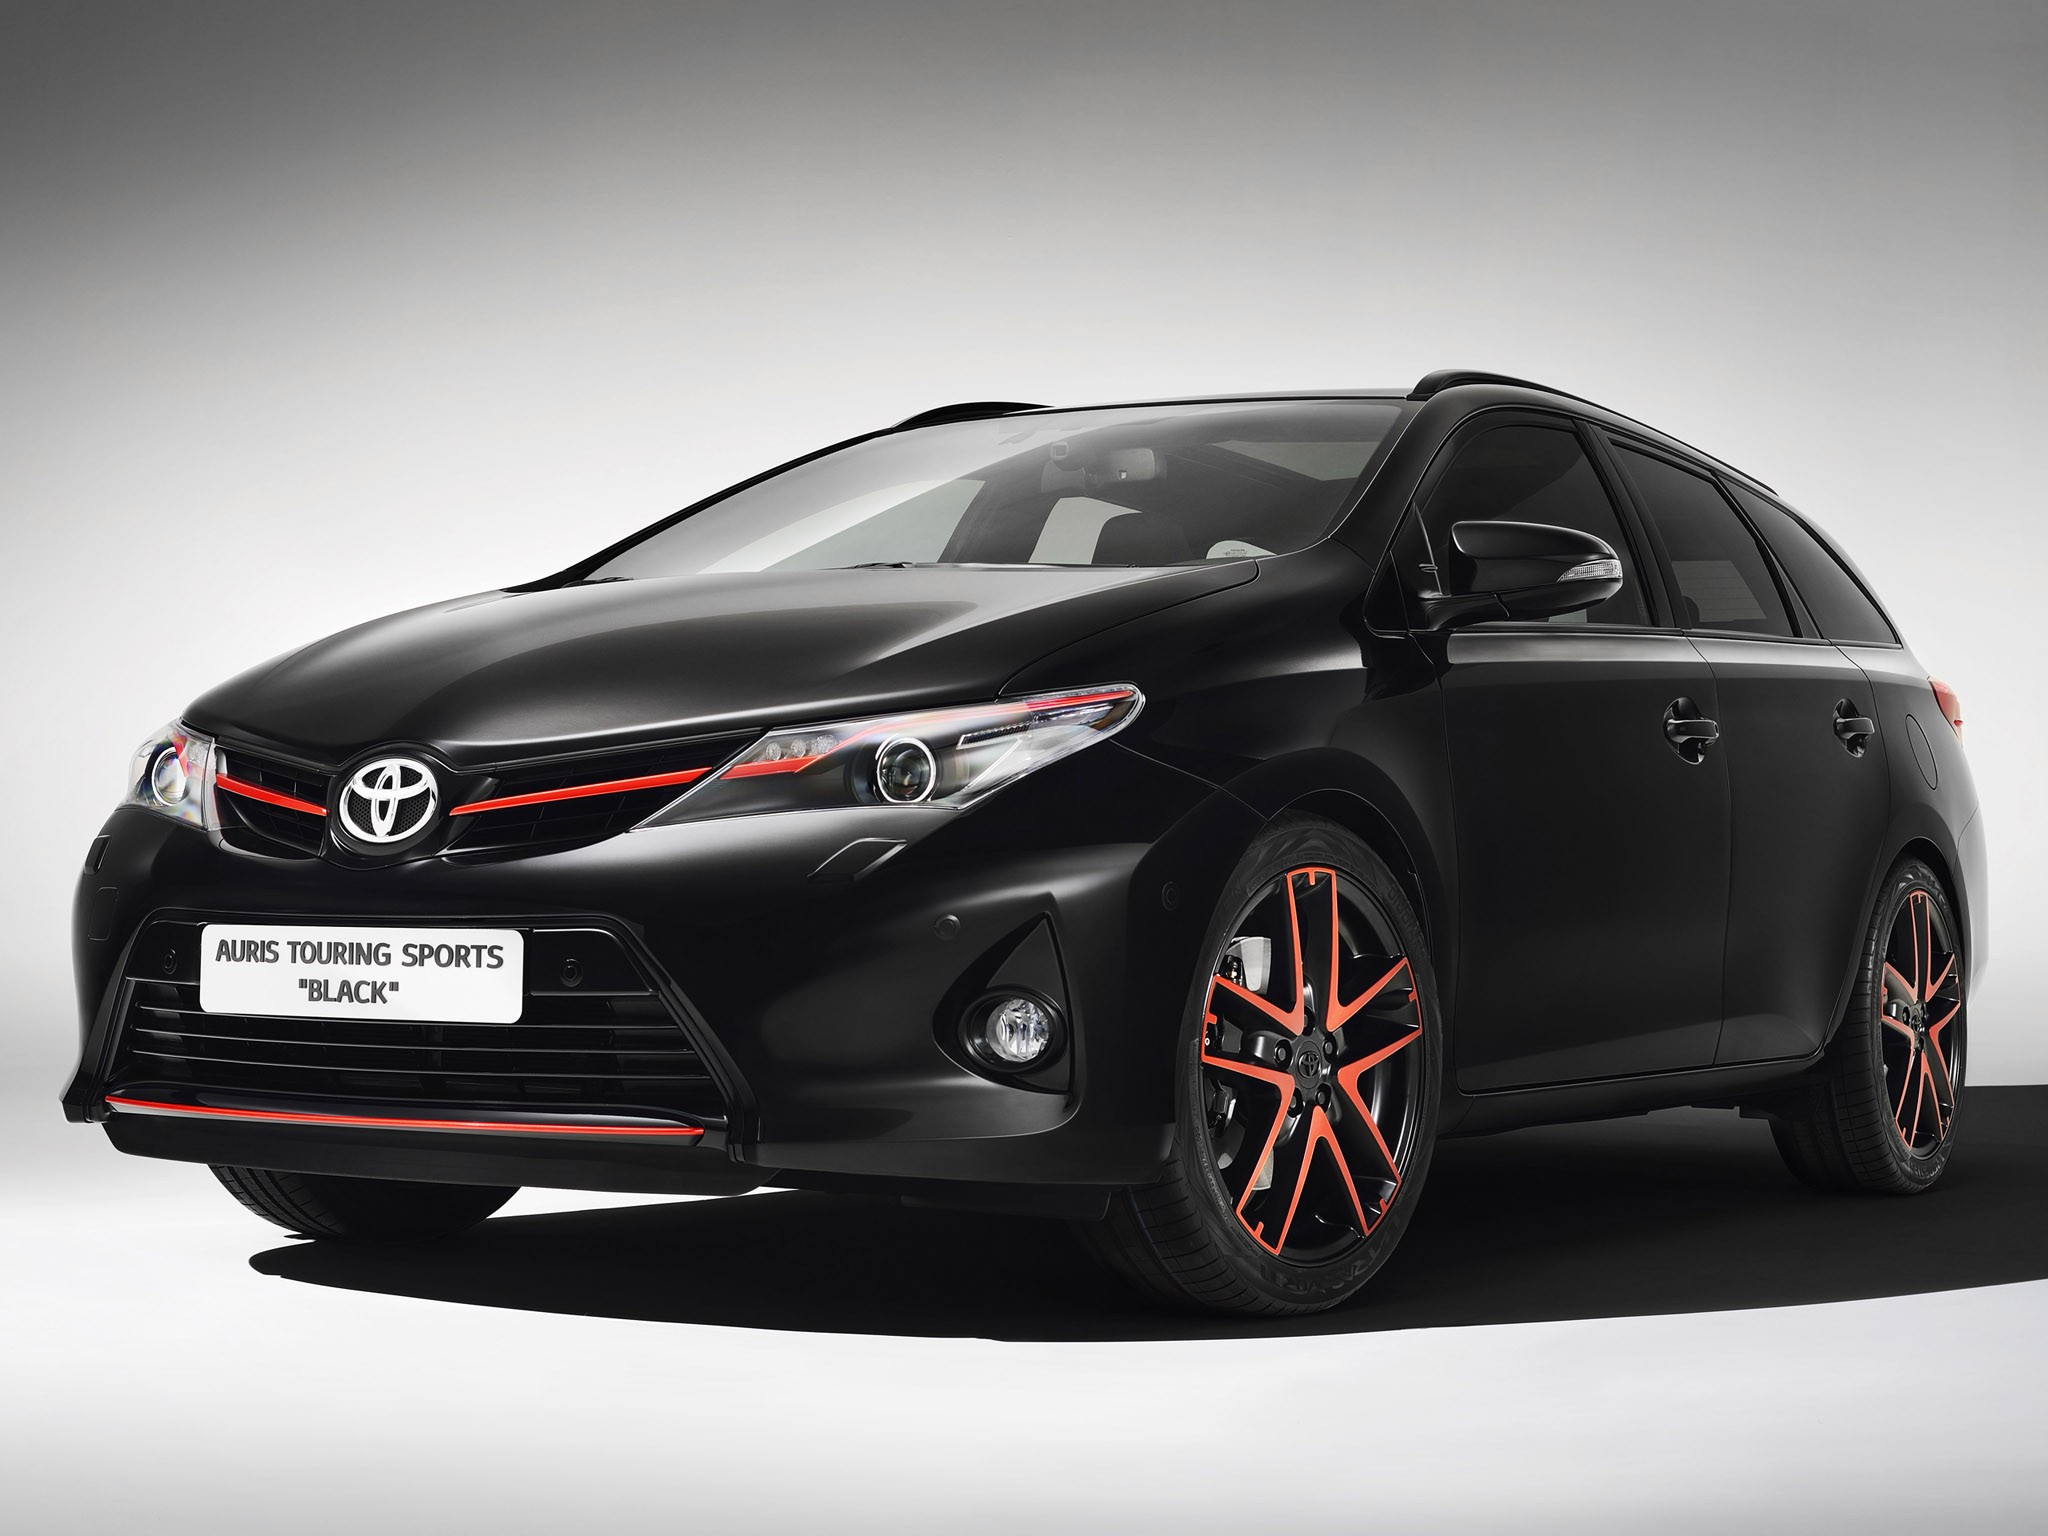 2013 Toyota Auris Touring Sports Black